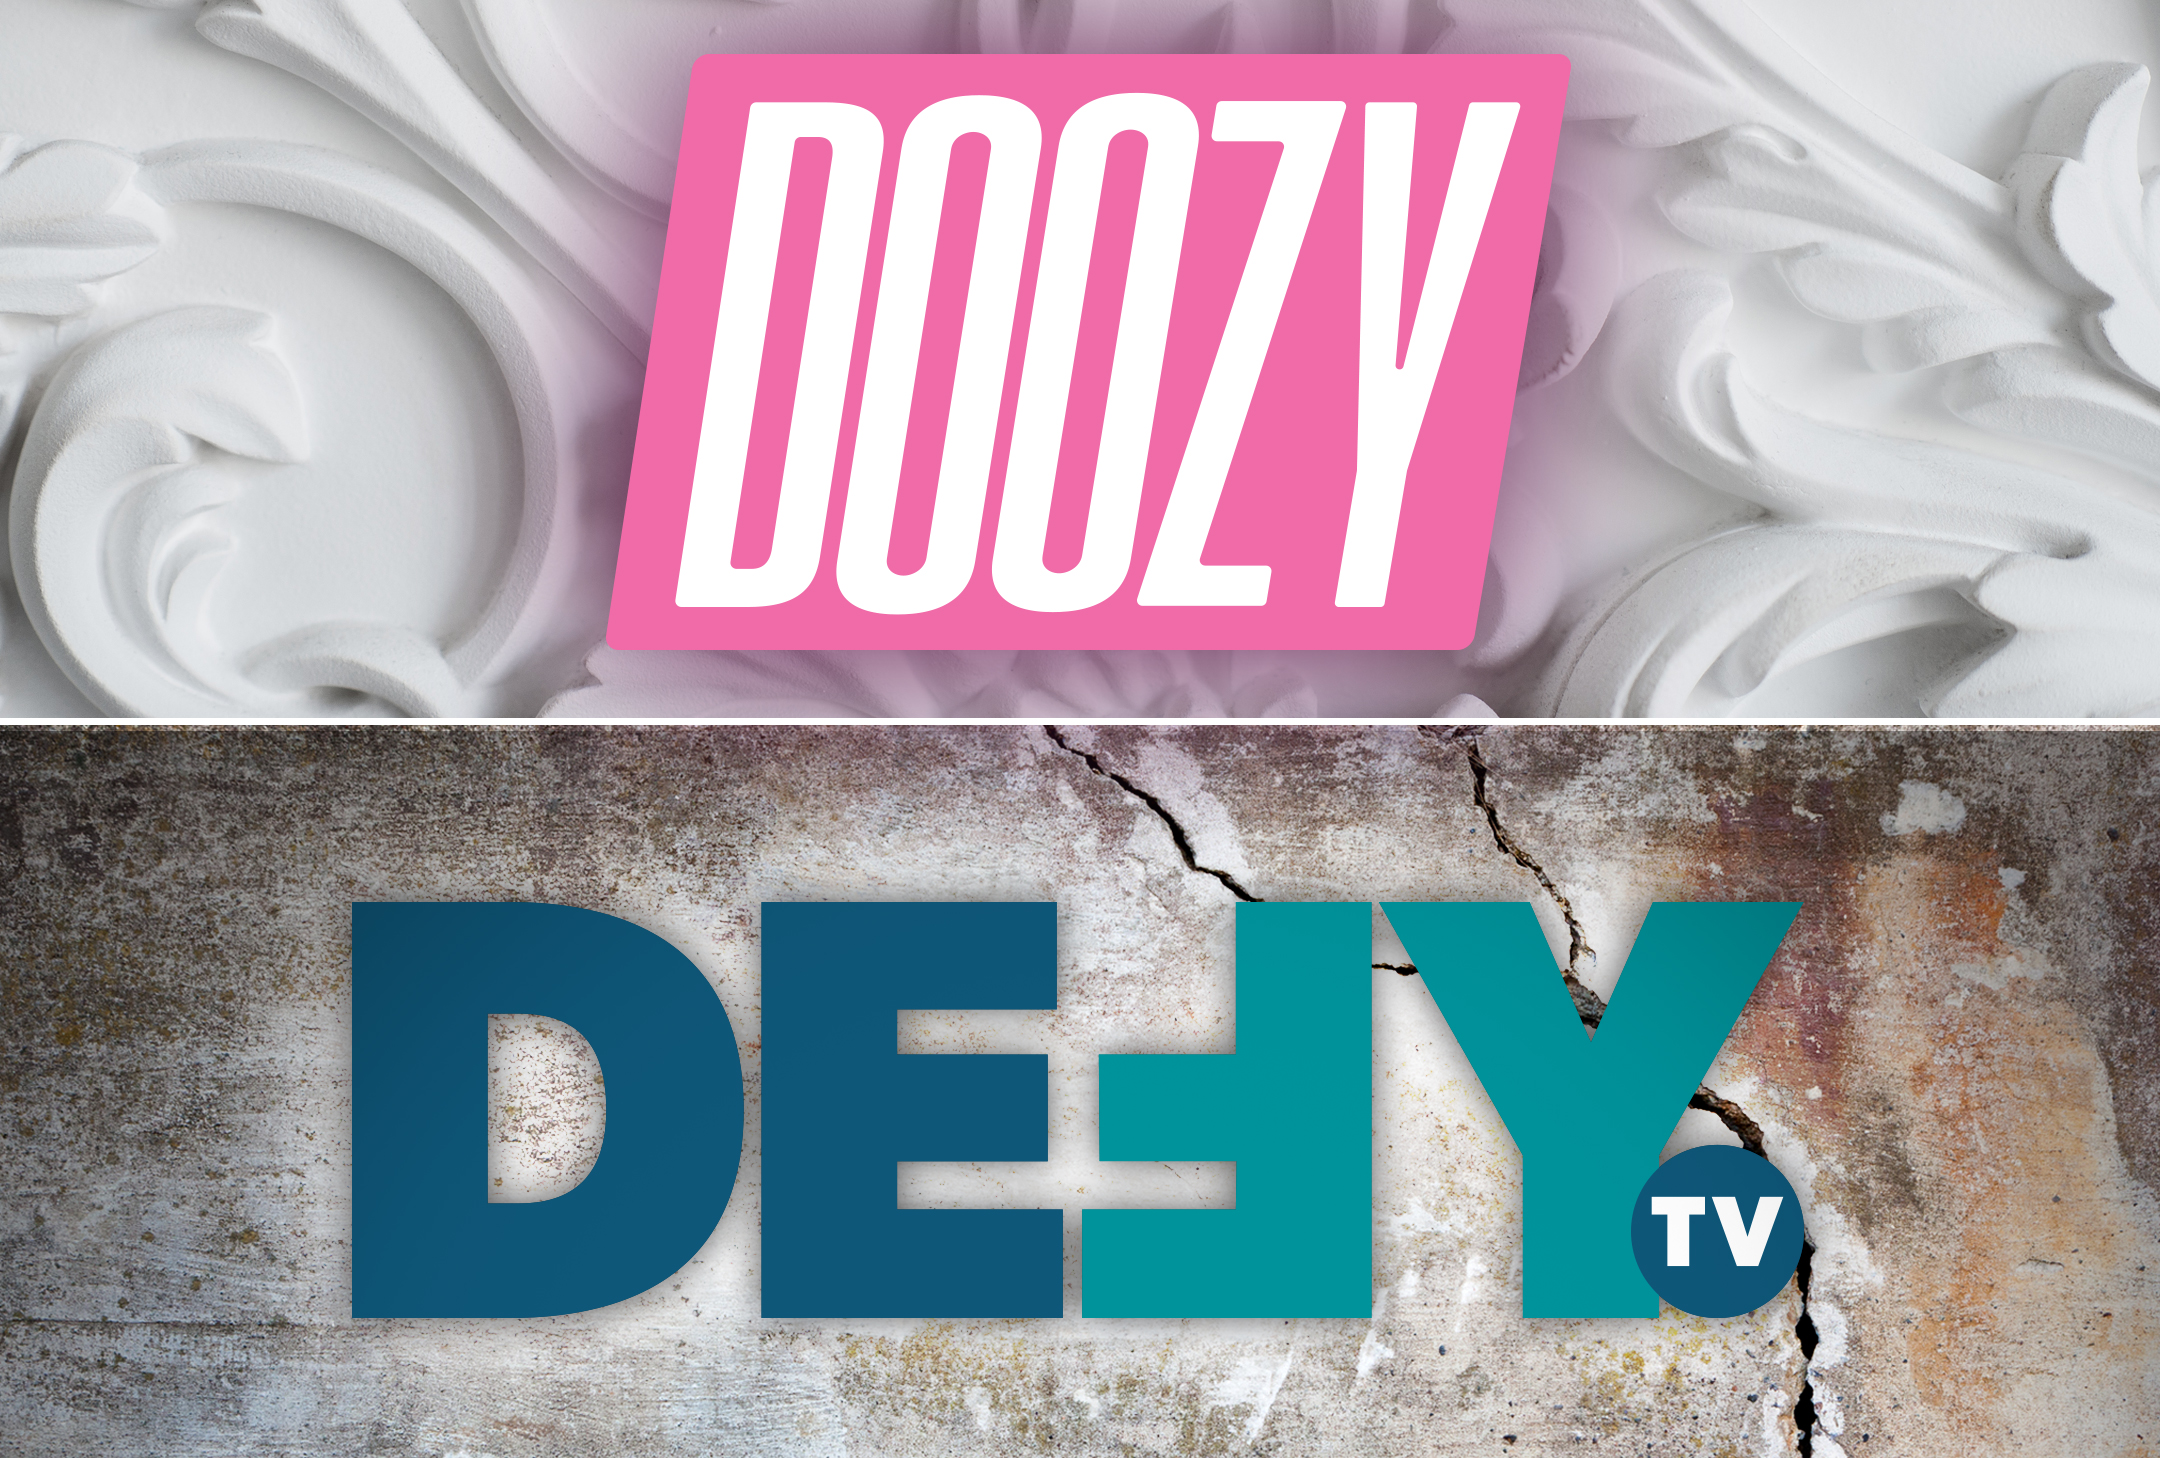 Doozy And Defy, New Reality TV Networks Aimed At Men And Women, Set To Join E.W. Scripps Multicast Portfolio